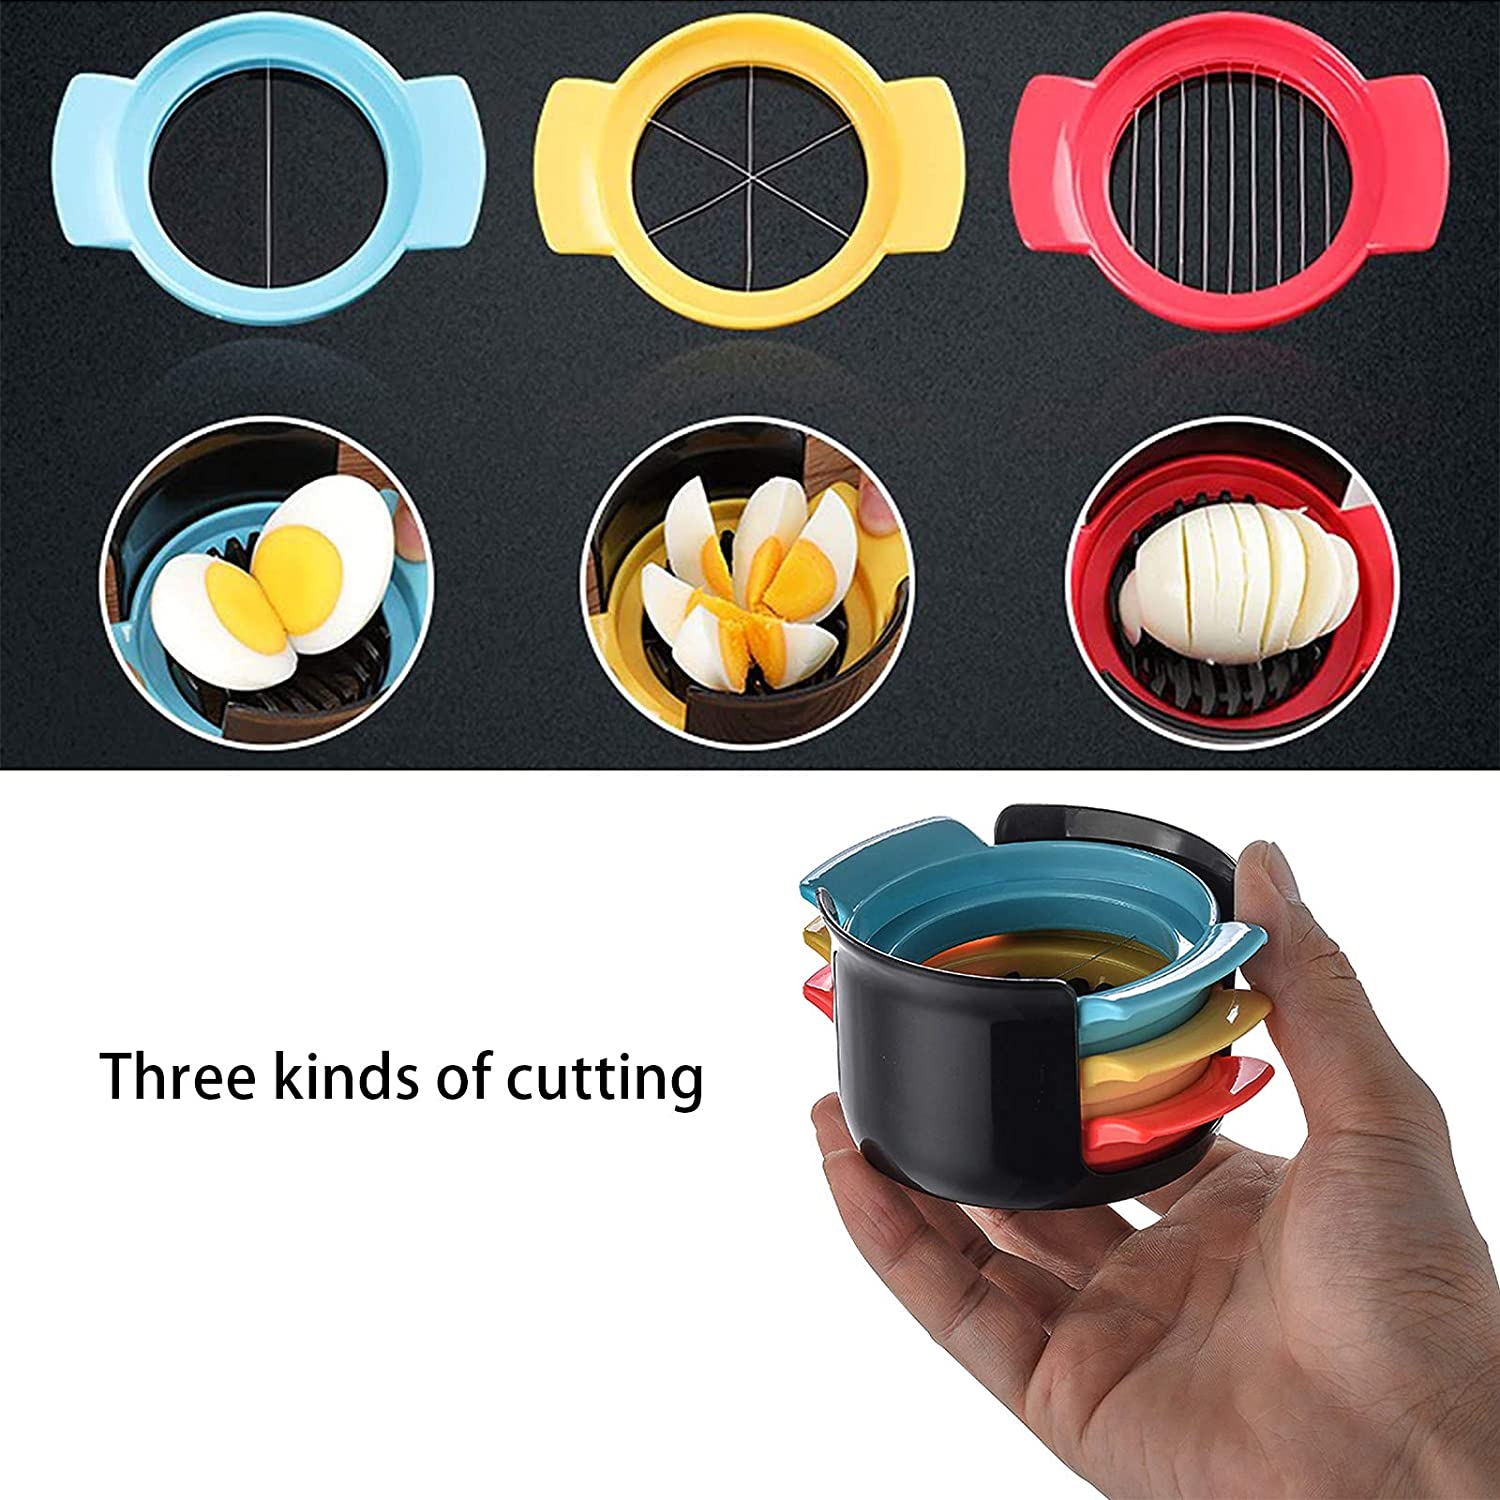 with 3 Slicing Styles Slicing Widget for Cutting Eggs// Fruits Egg Slicer 3 In 1 ABS Agg Cutter Egg Slicer for Hard Boiled Eggs